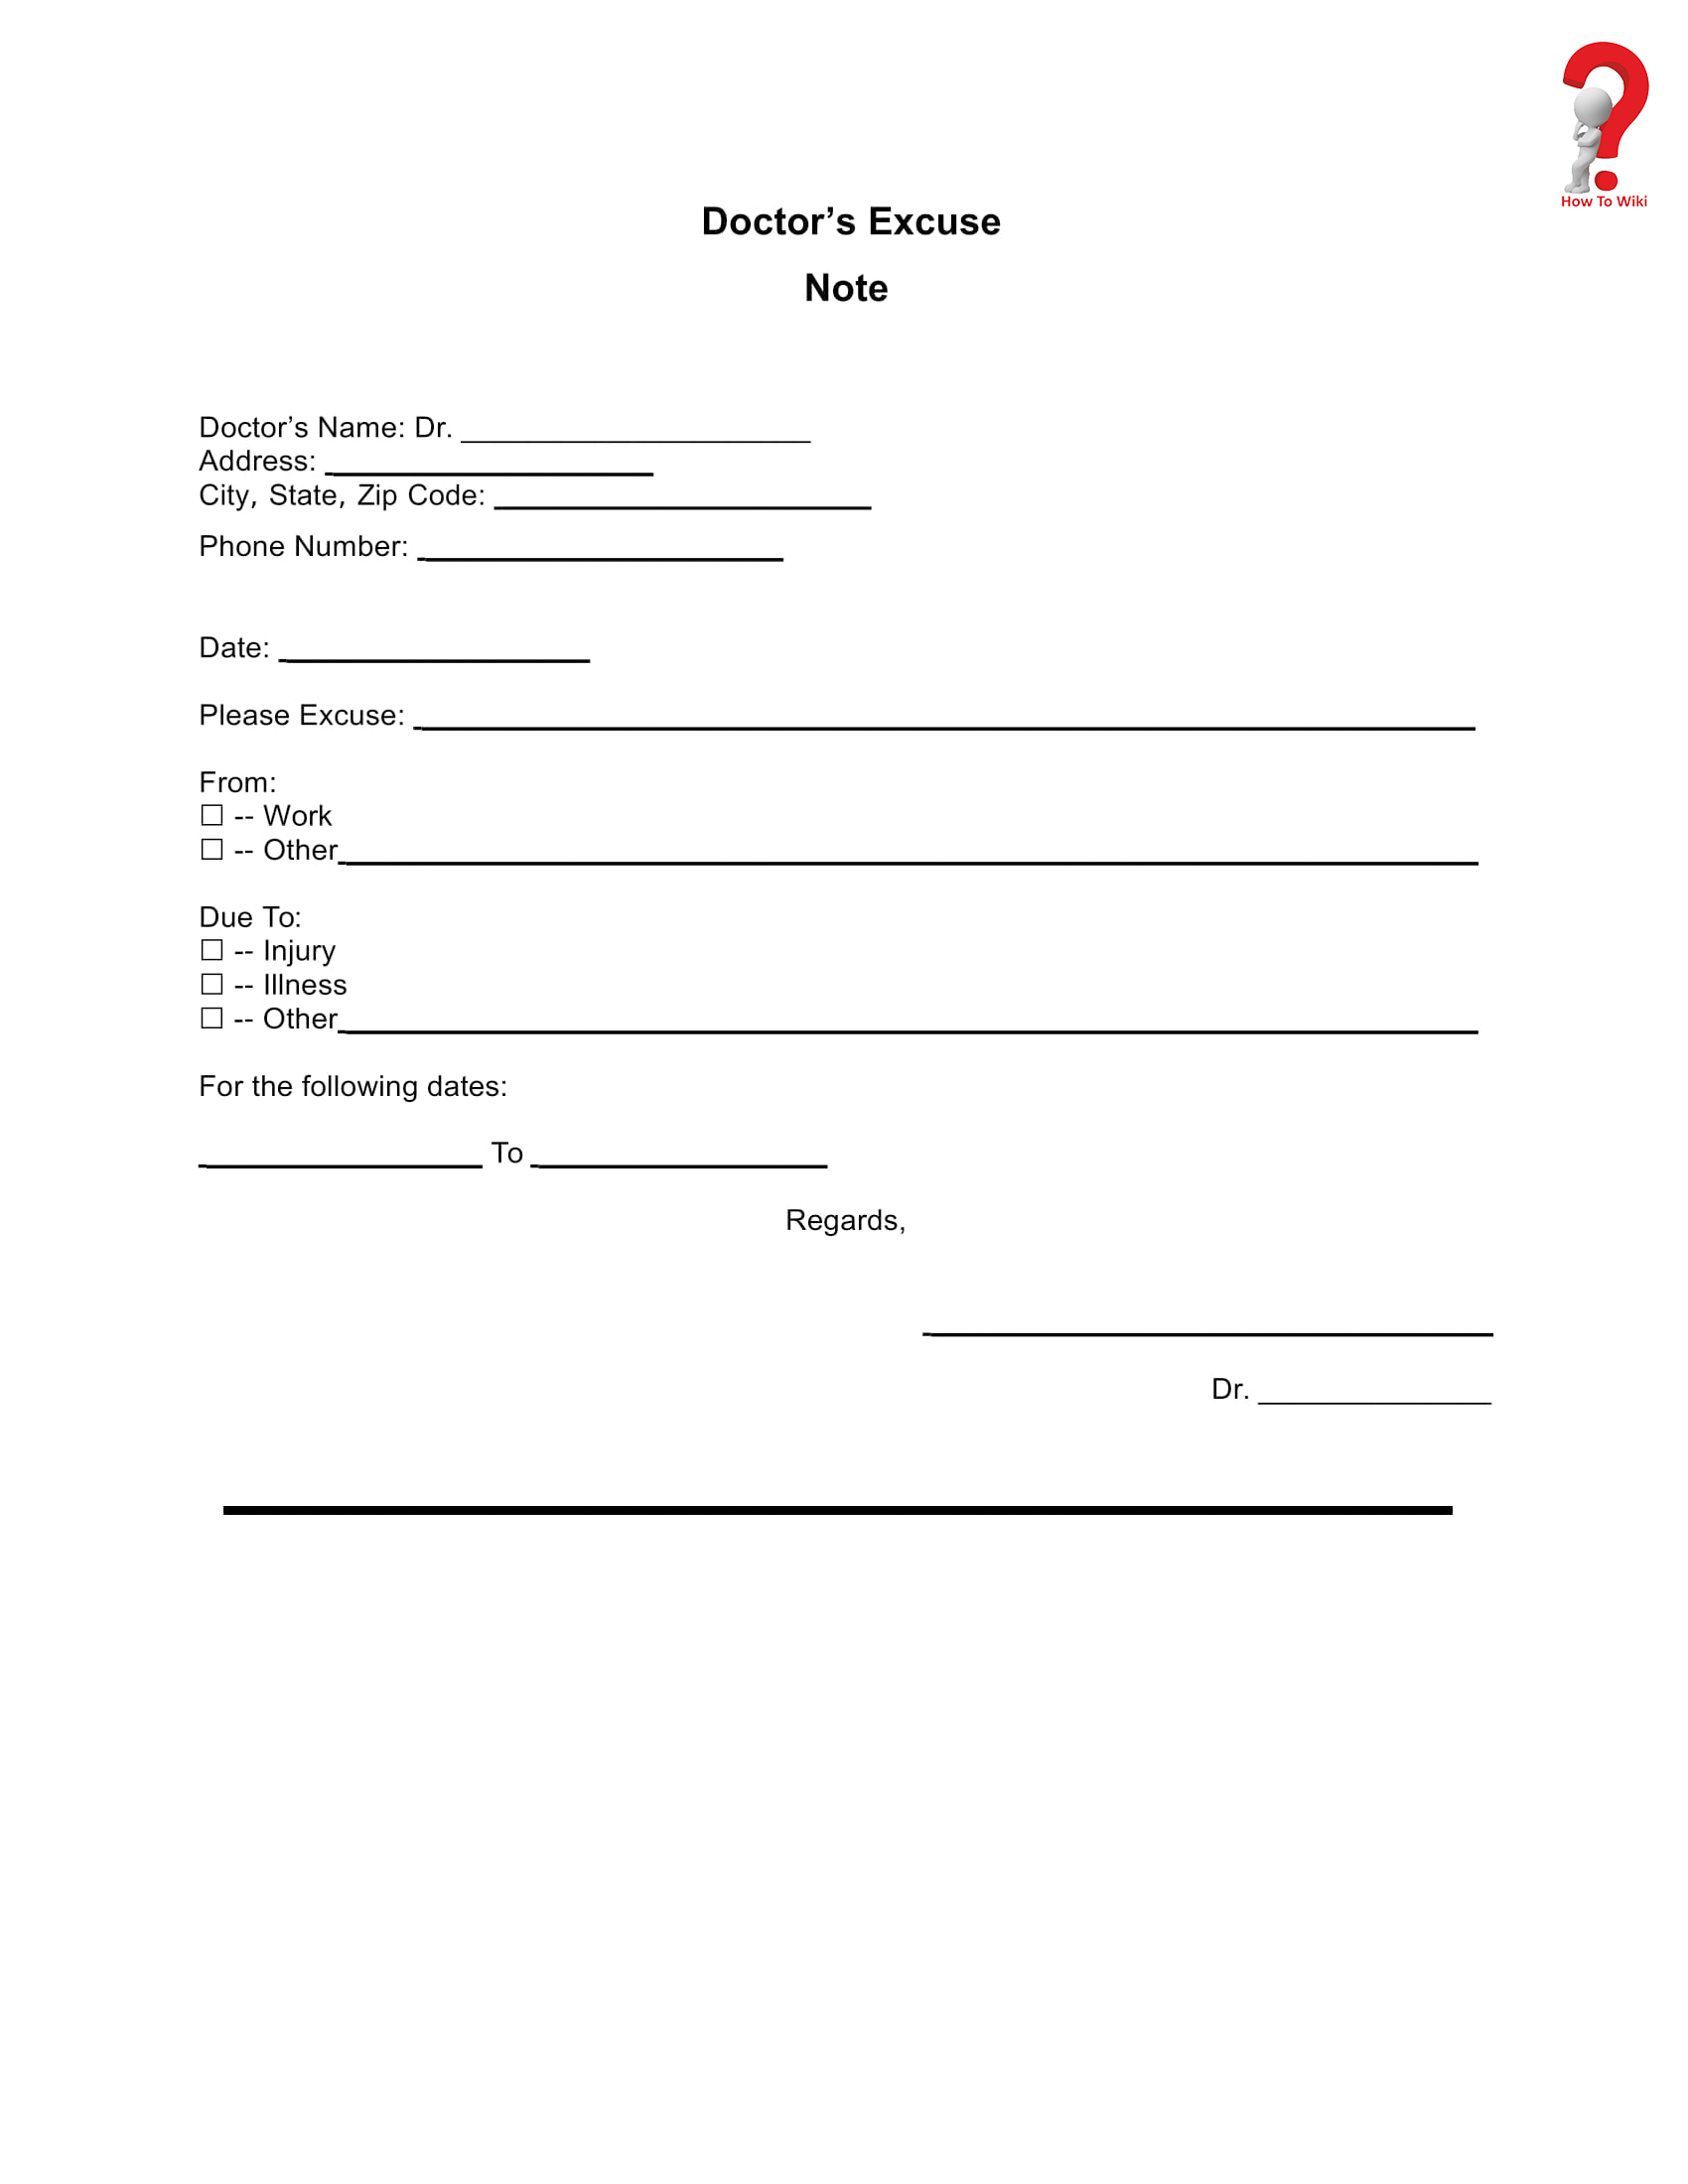 Printable templates for Doctor's notes